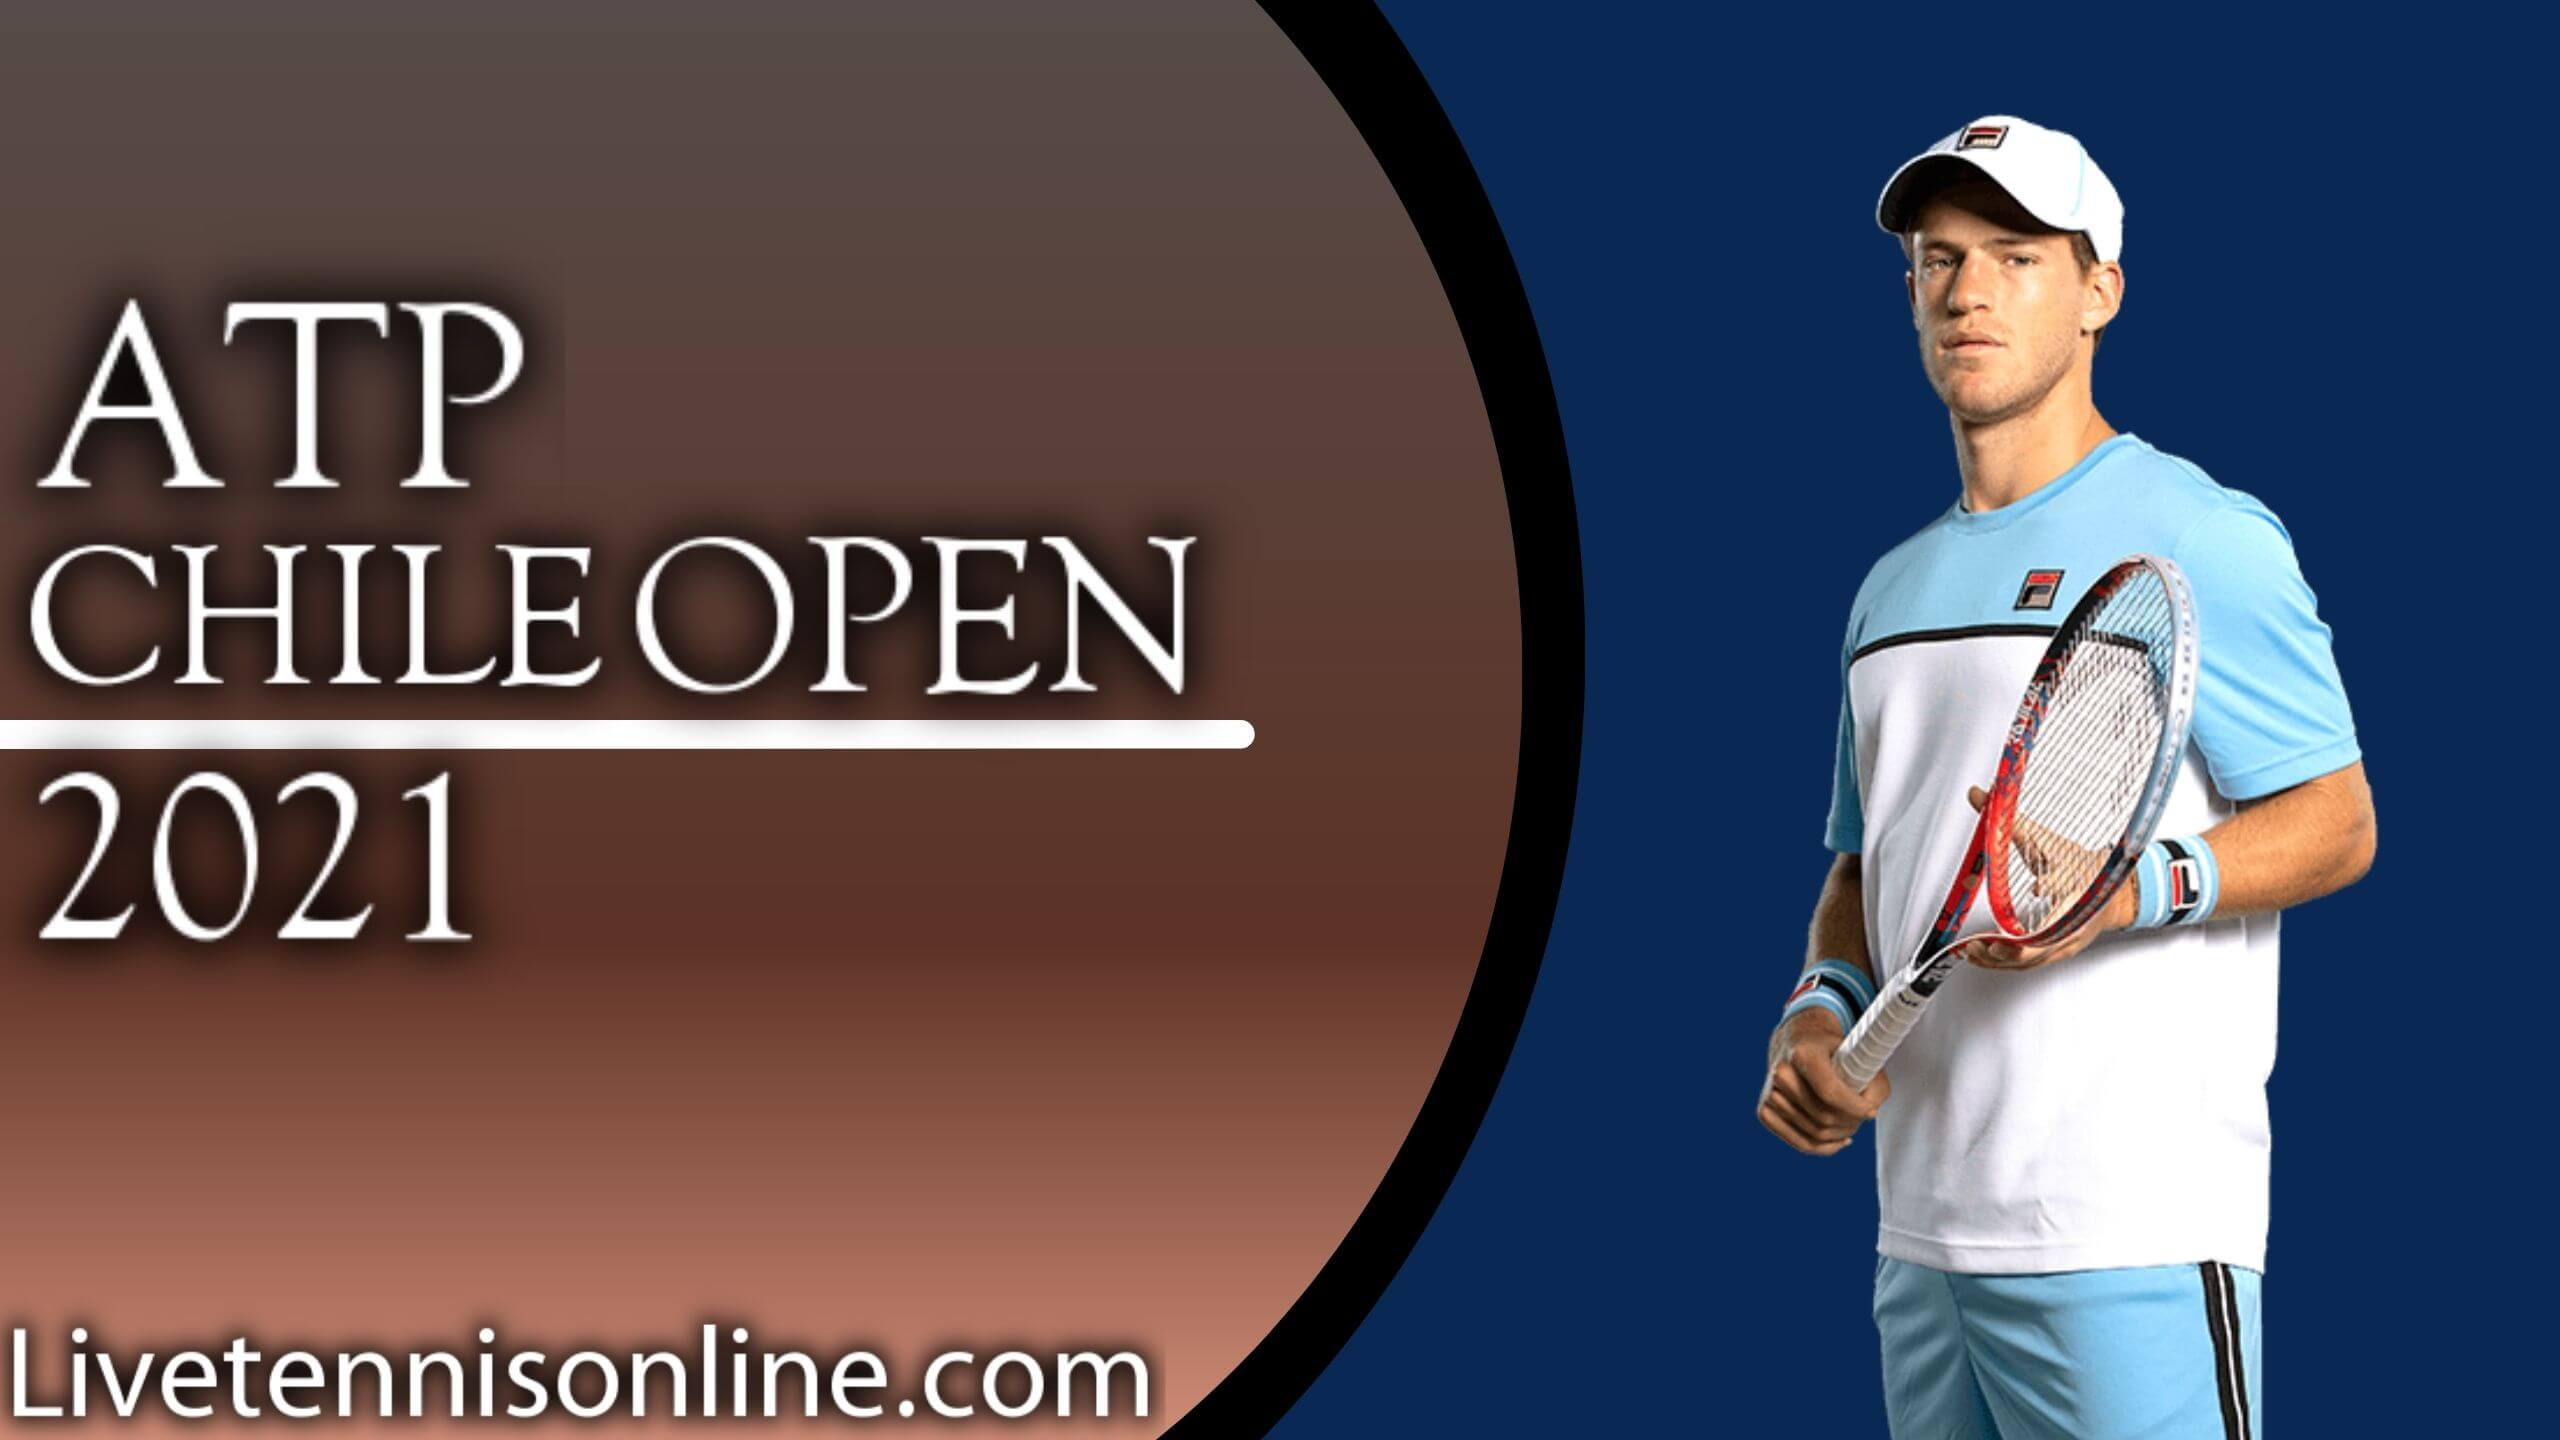 ATP Chile Open Tennis Live Stream